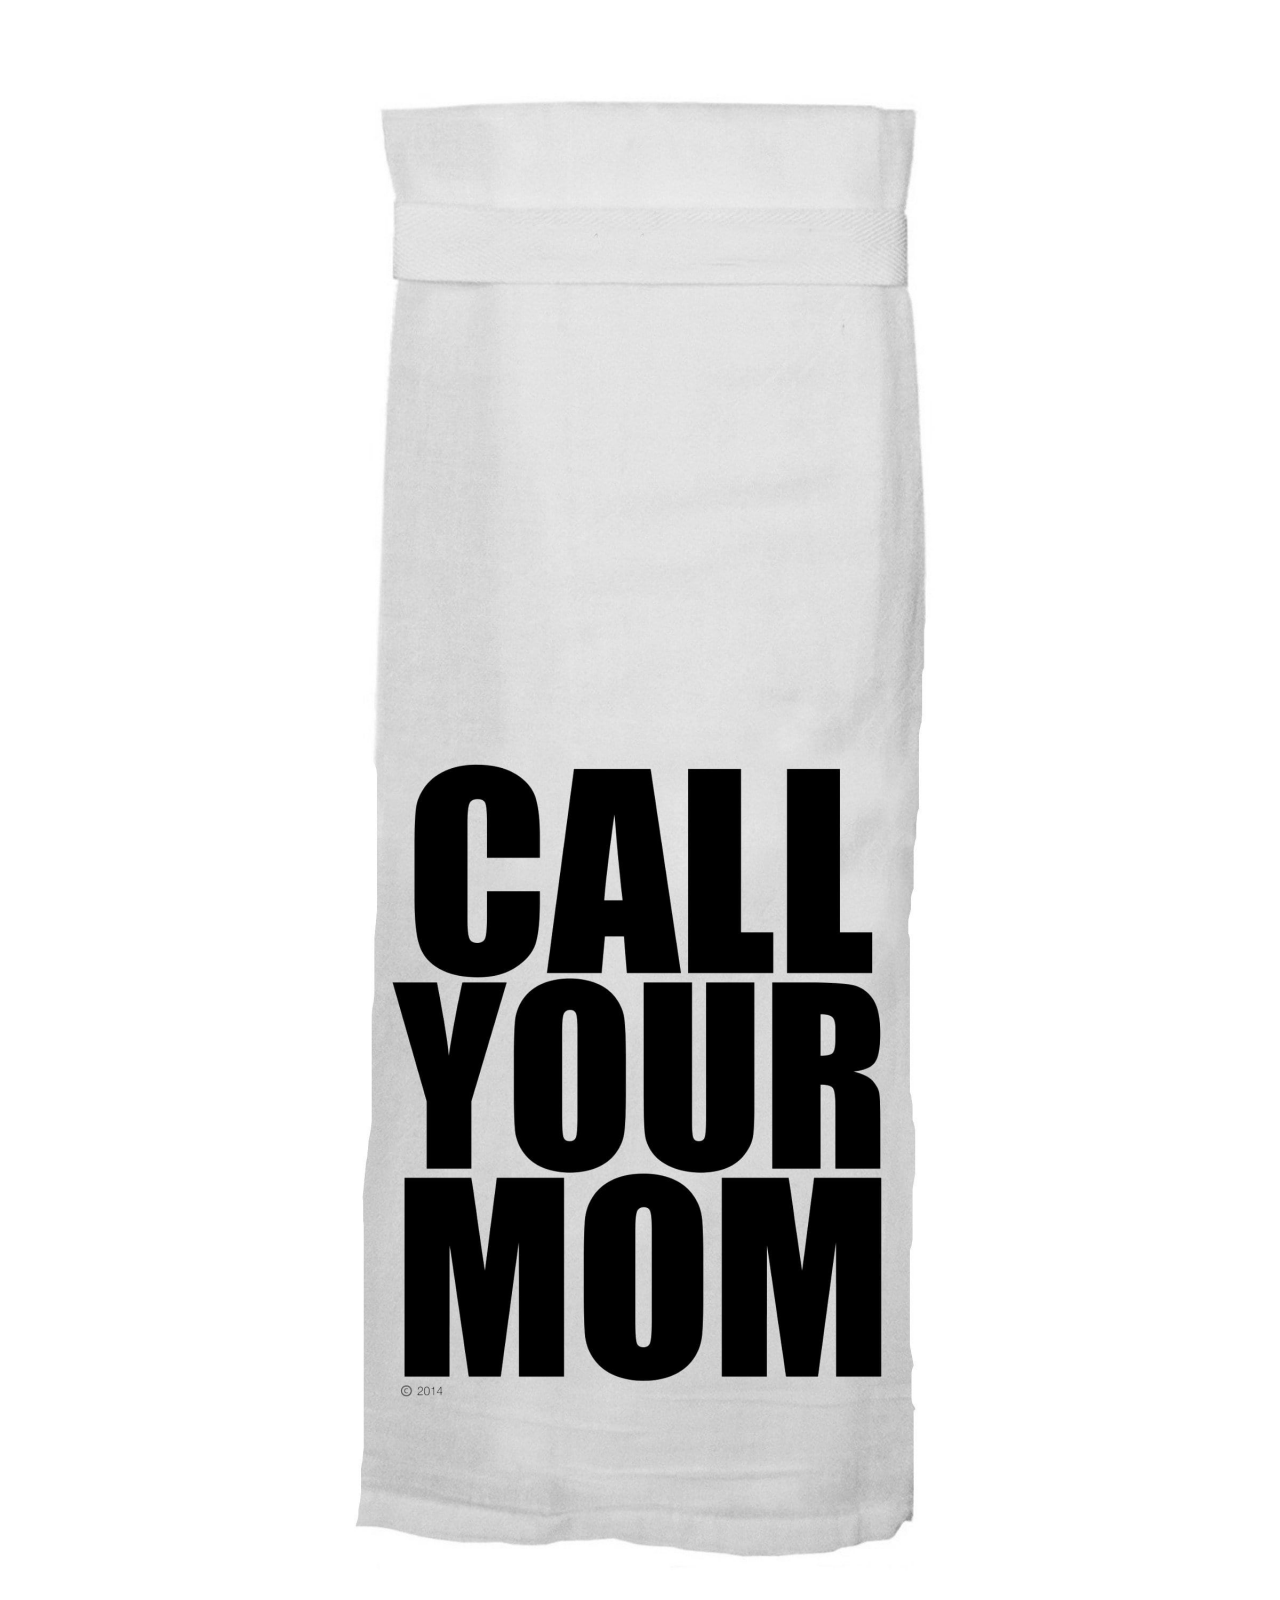 Flour Sack Towel - Call Your Mom